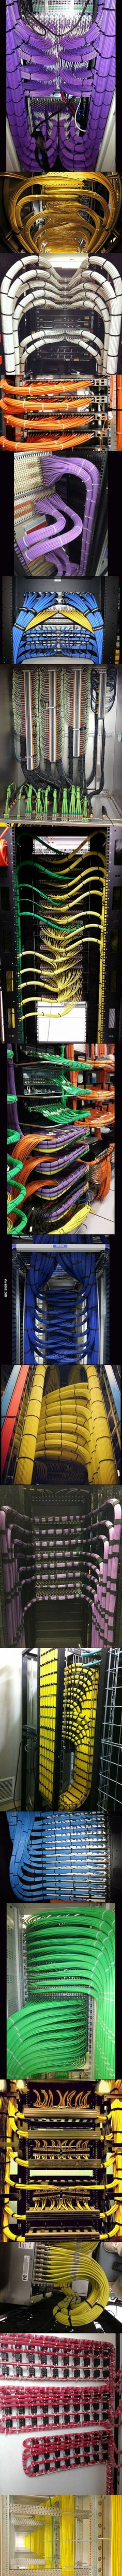 Beautiful cable management